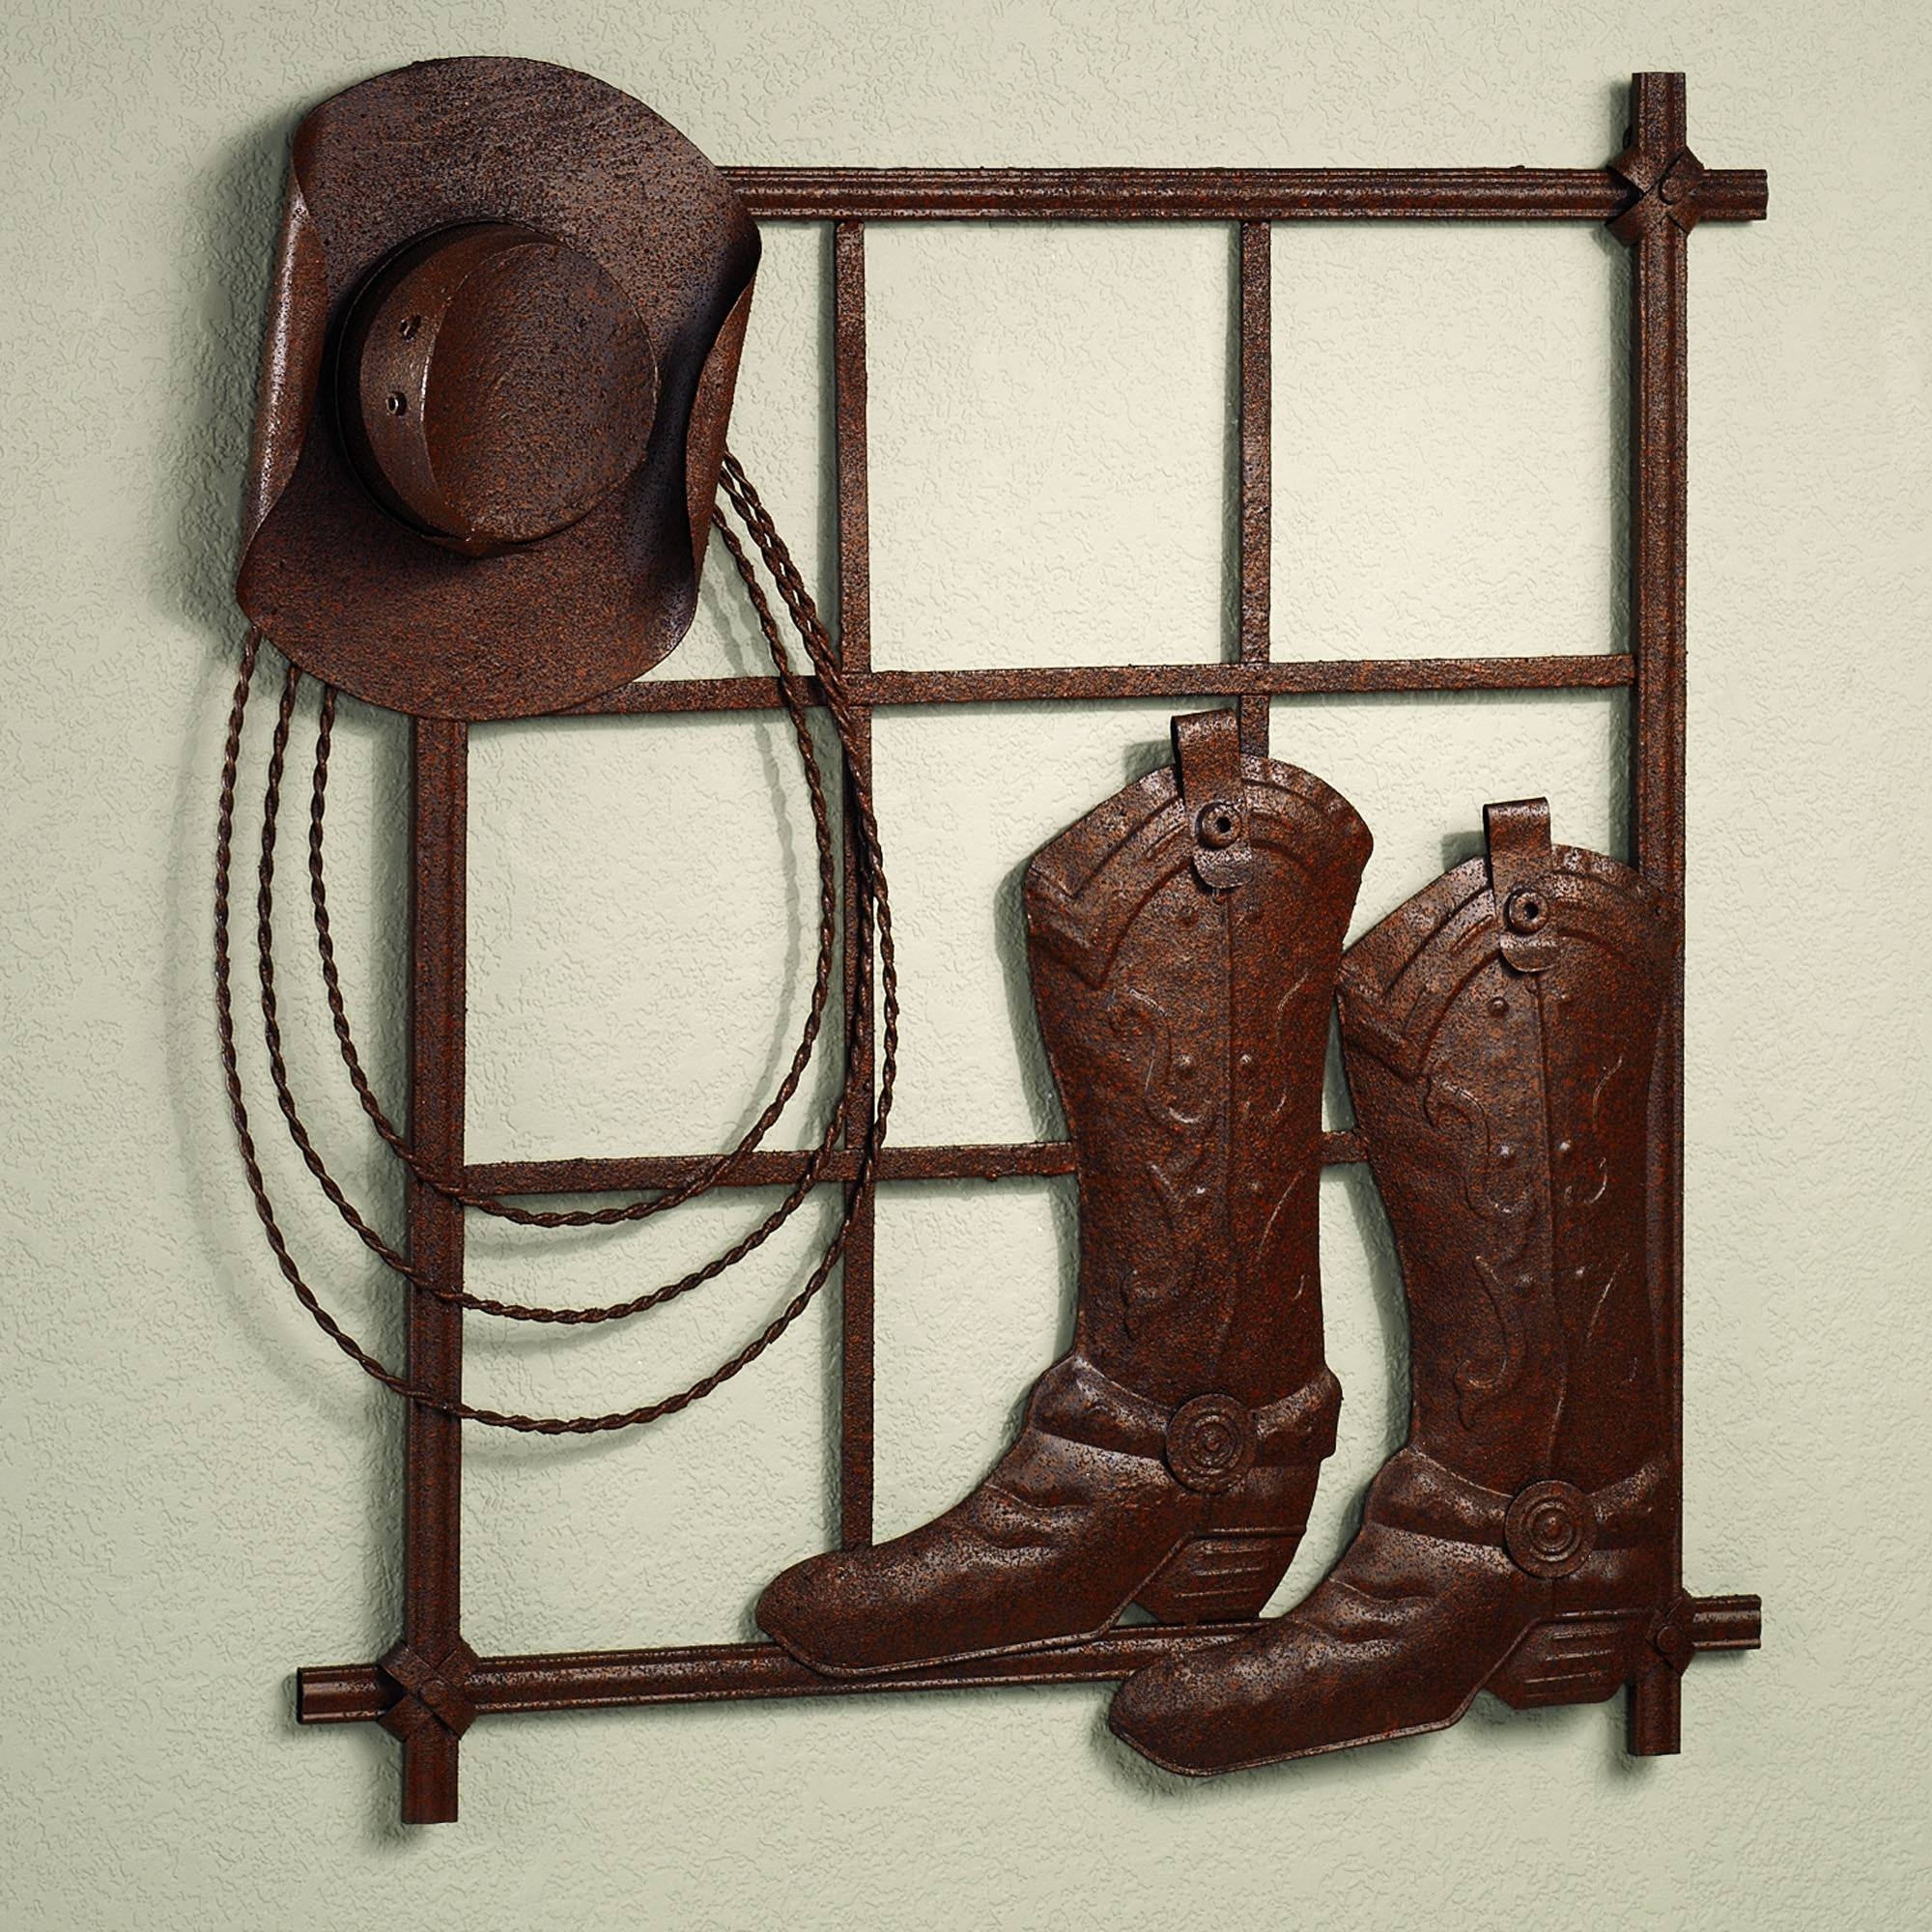 Home Design : Rustic Wood And Metal Wall Art Craftsman Large For Most Up To Date Wood And Metal Wall Art (View 9 of 20)